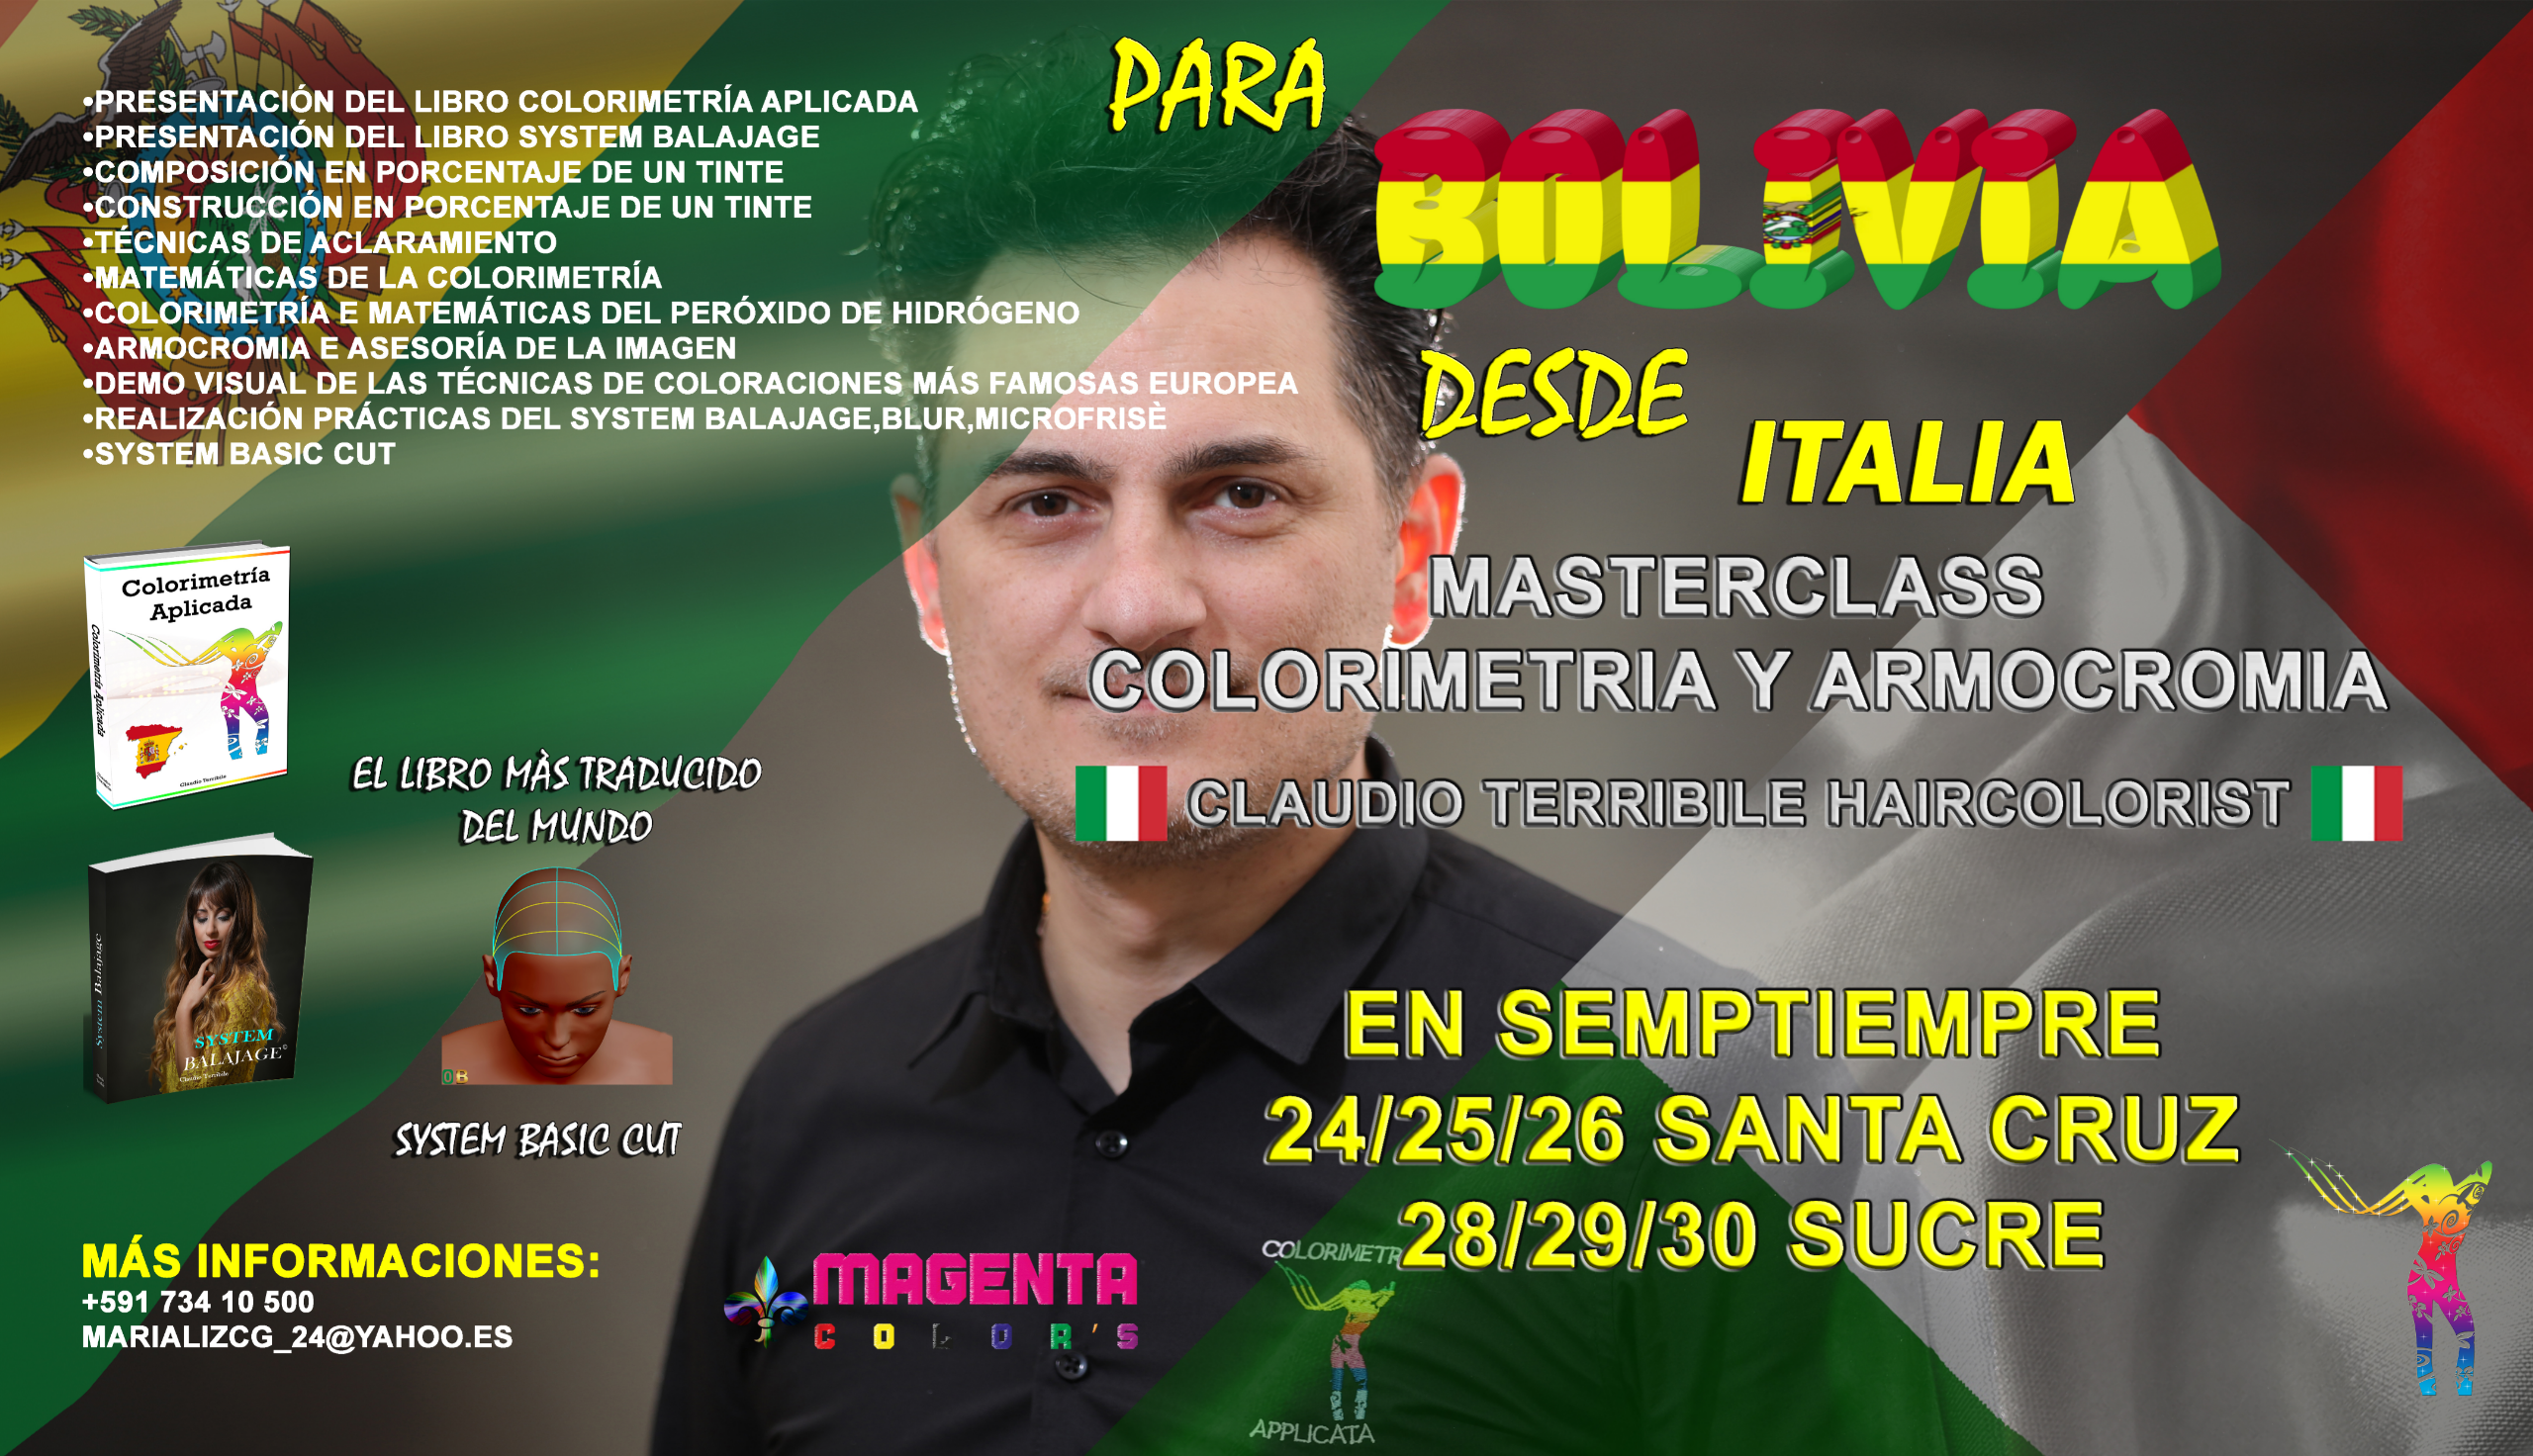 Bolivia, in September, 24/25/26 Santa Cruz AND 28/29/30 Sucre ,Masterclass by Claudio Terribile Haircolorist by Claudio Terribile